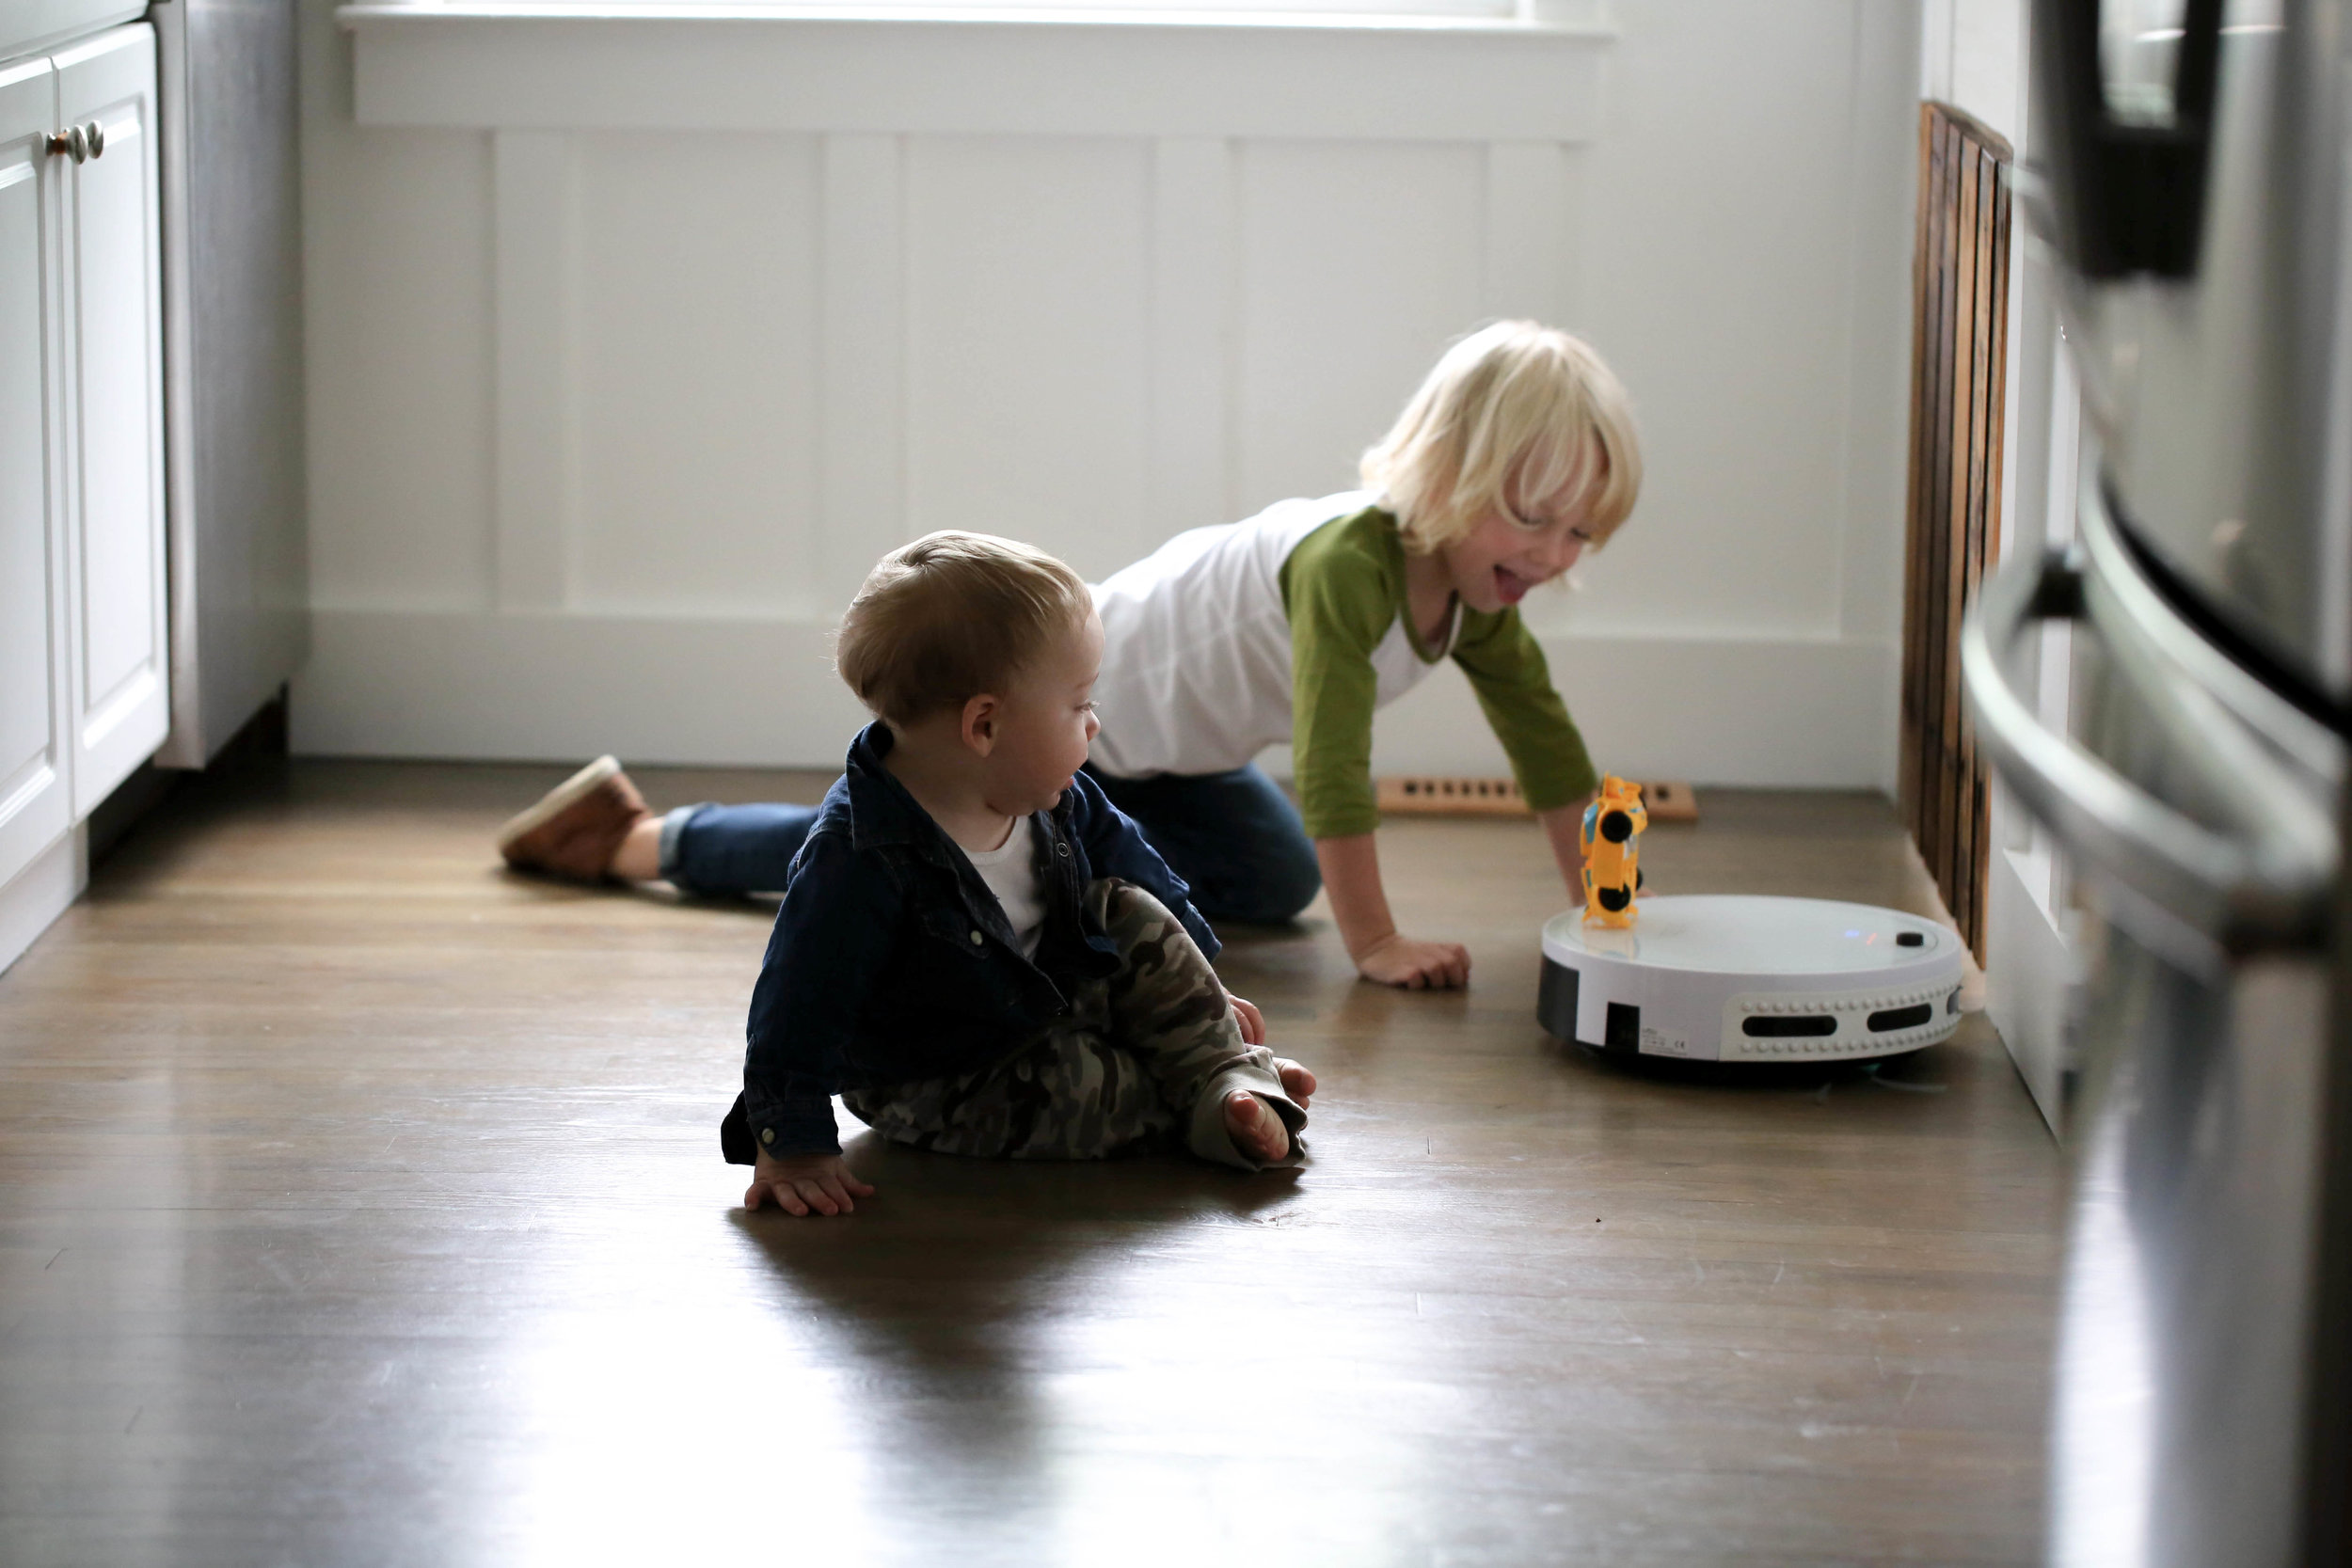 bObi Classic vacuum perfect for toys too